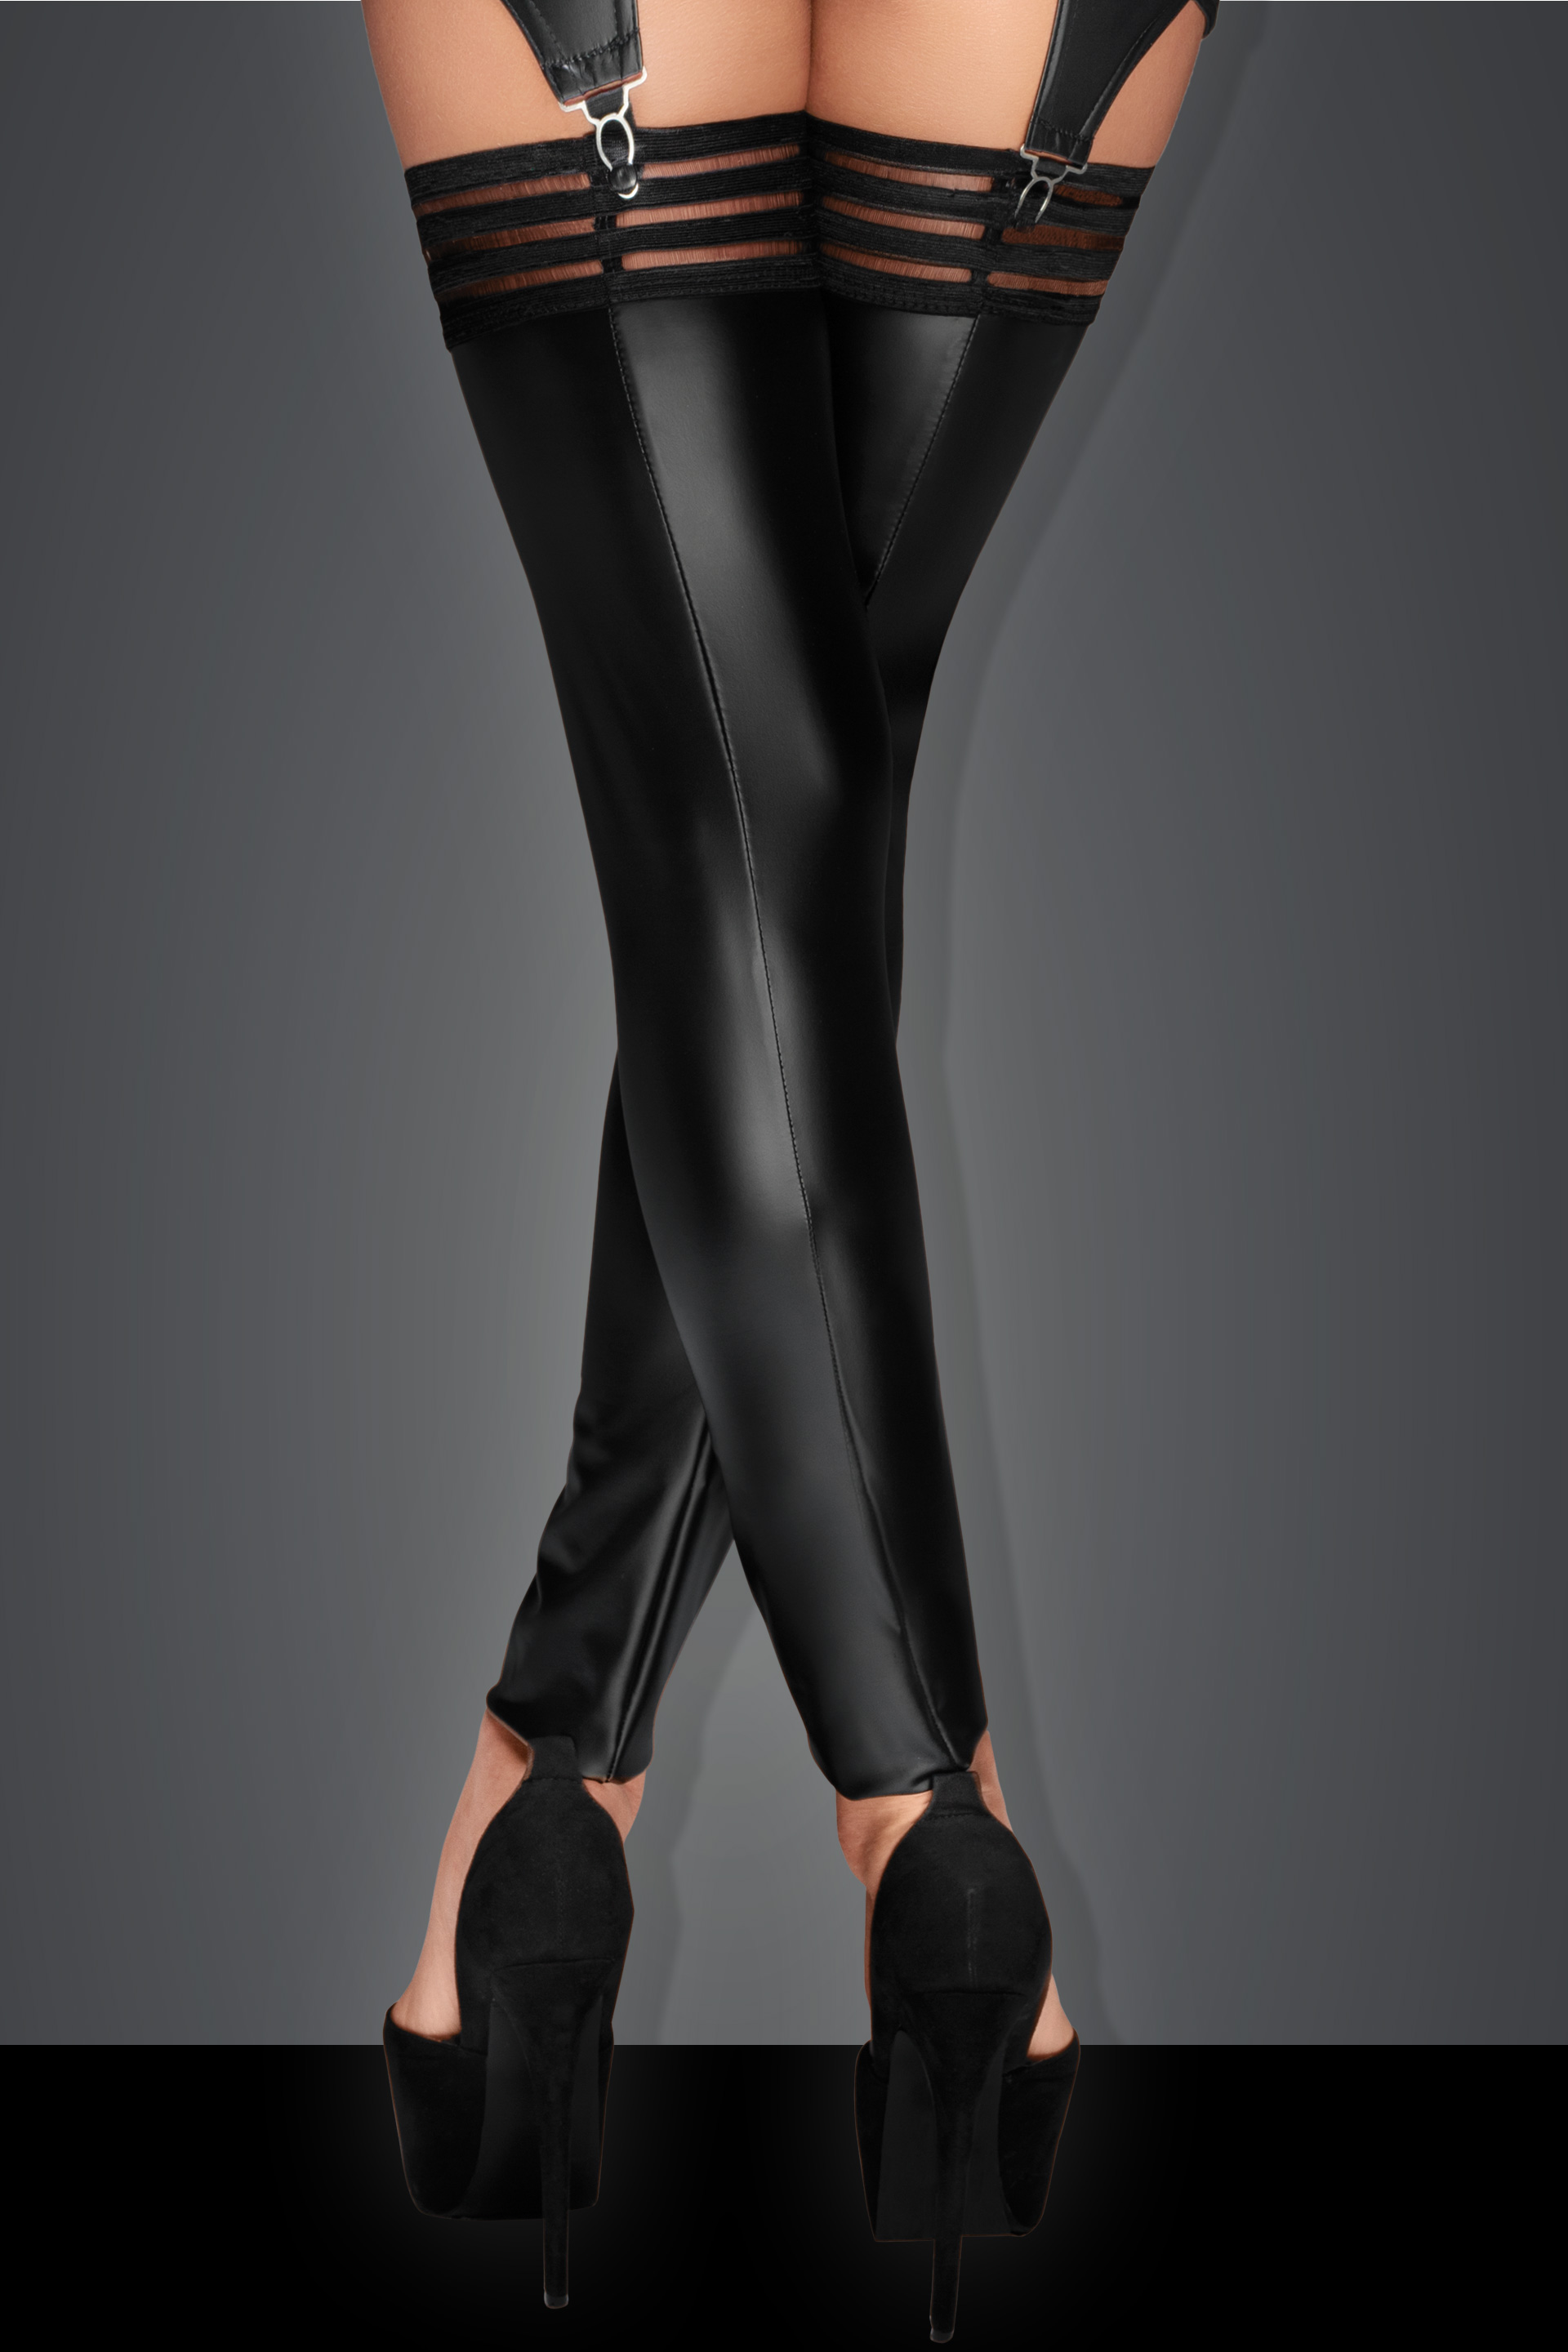 F158 Powerwetlook Stockings mit elastischen Bändern